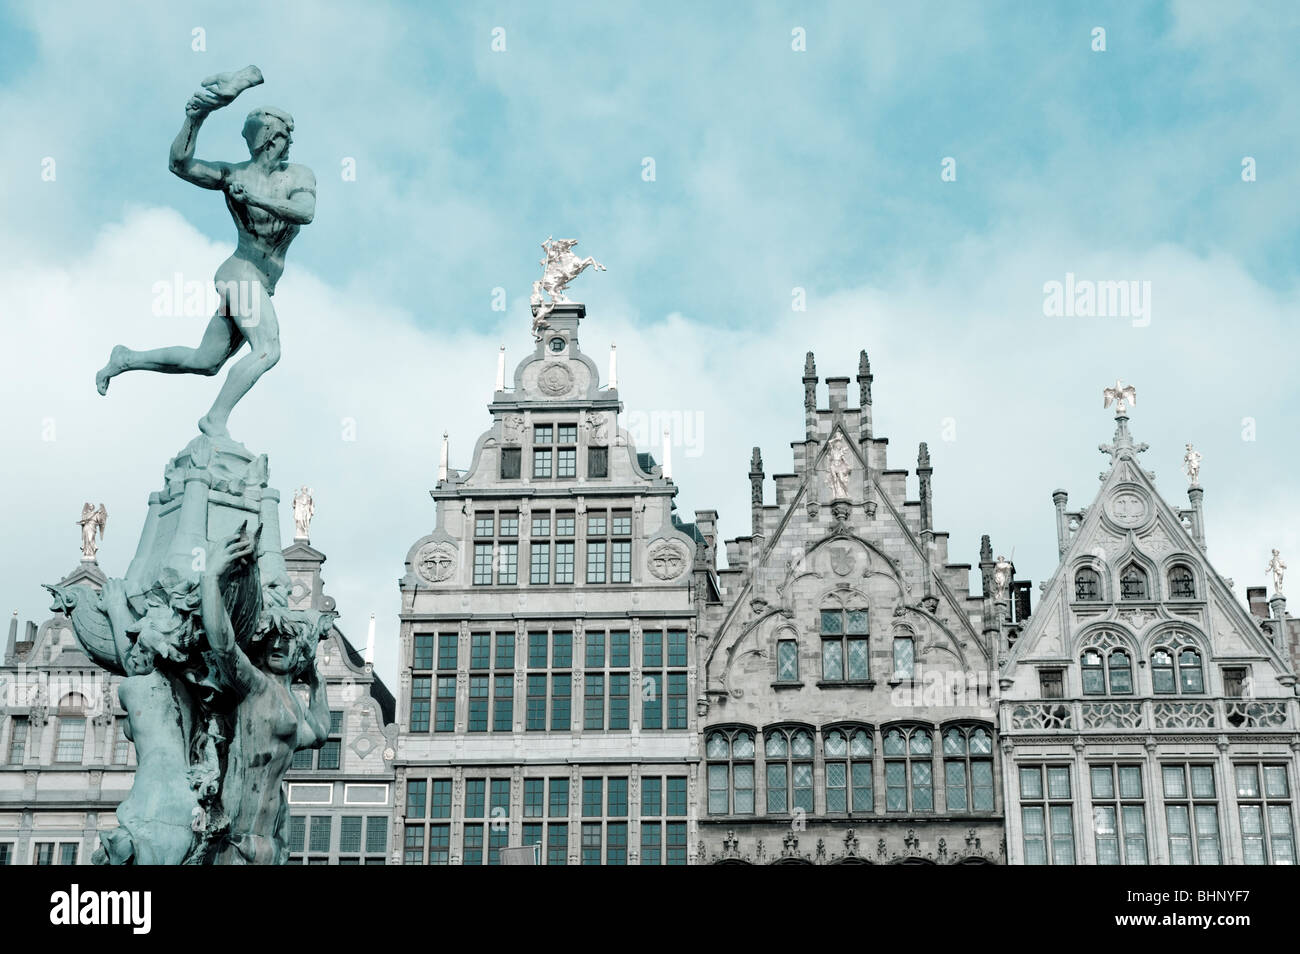 Antwerp; Brabo Fountain and historic buildings in Grote Markt square in Antwerp Belgium duo tone Stock Photo